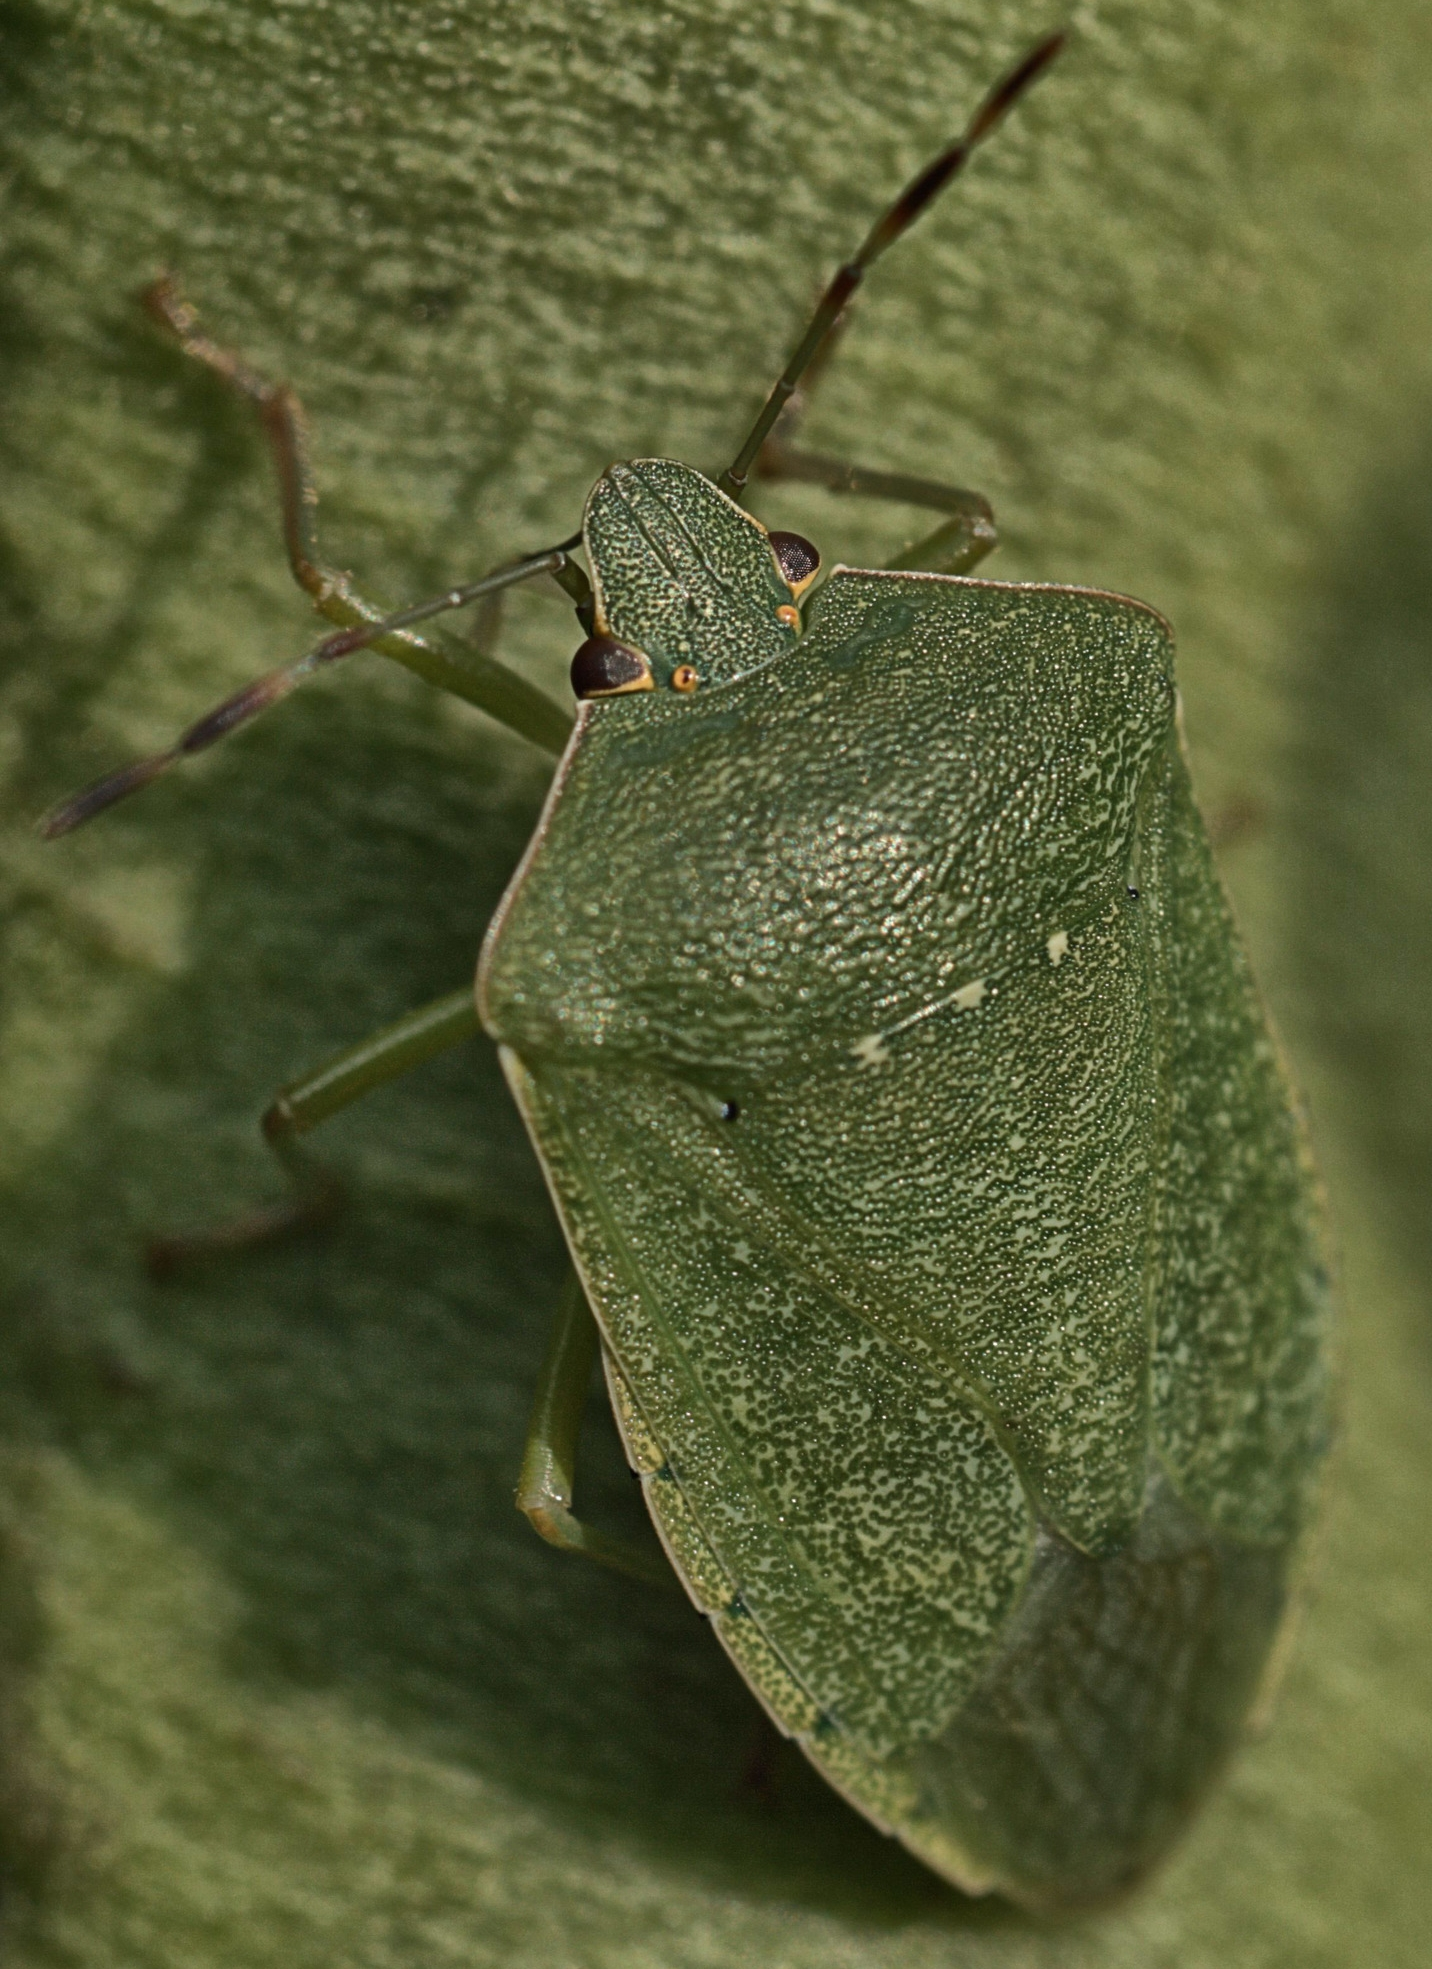 Adult Southern Green Shield Bug